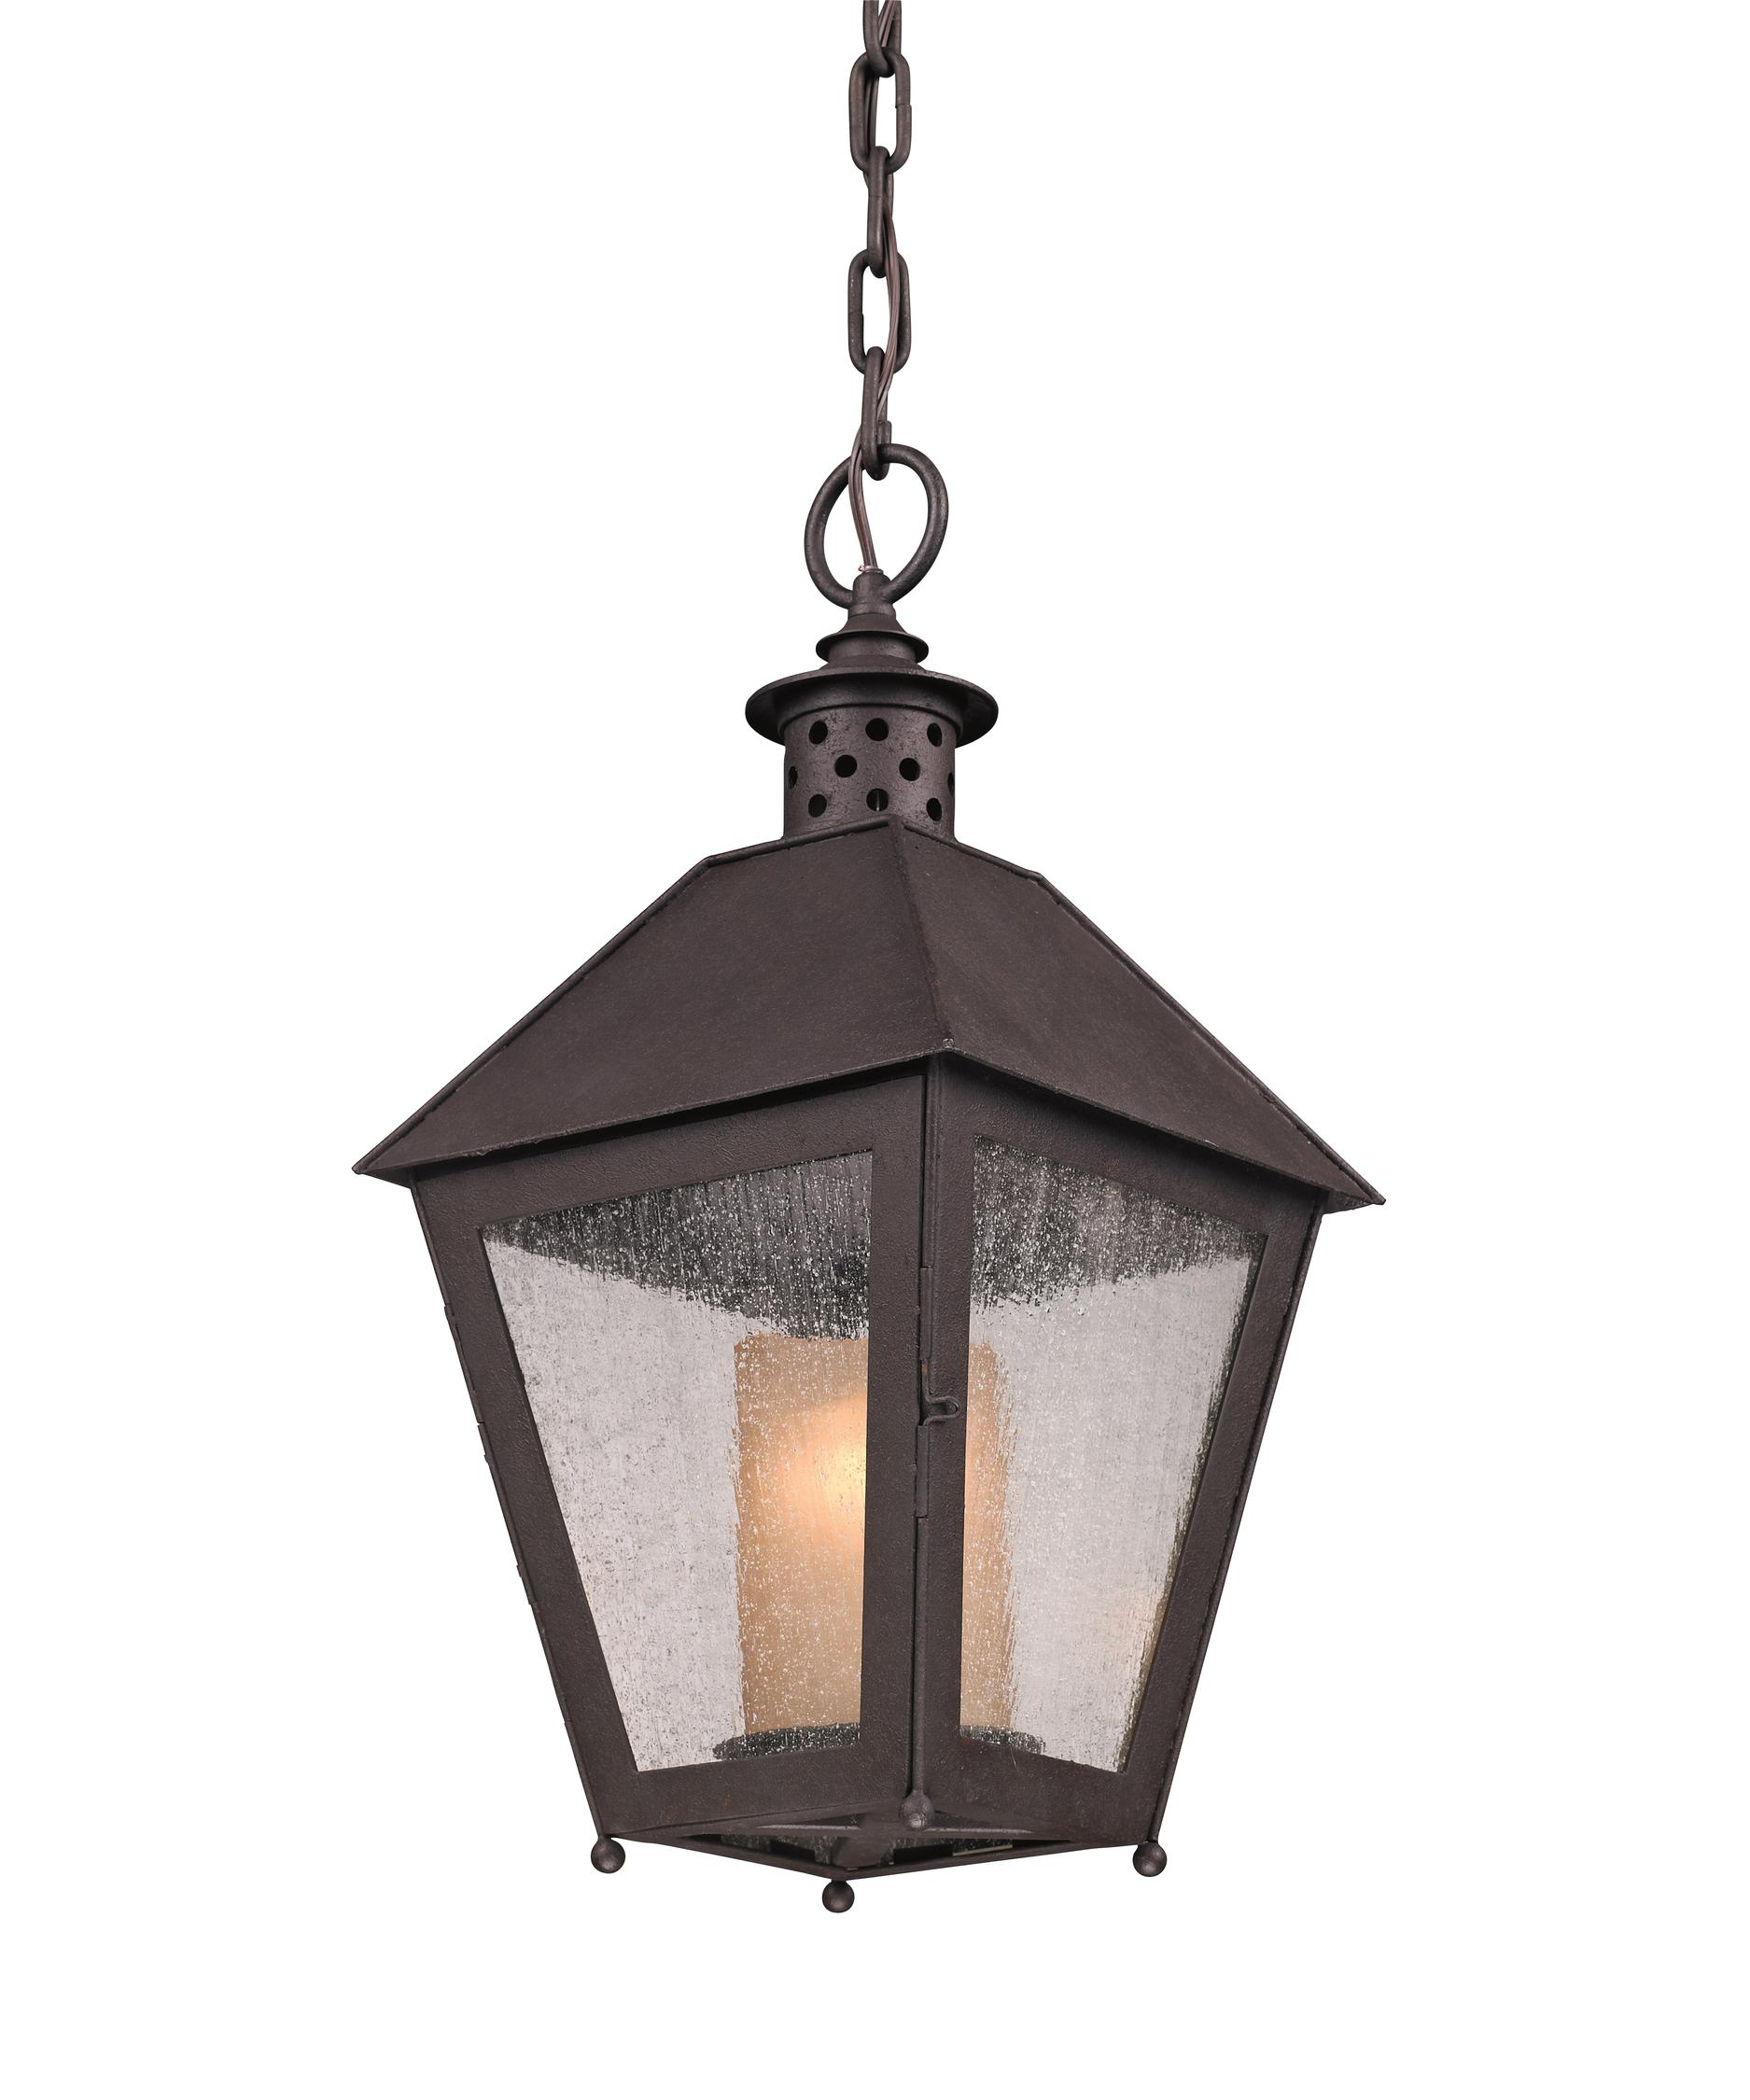 Outdoor hanging lamp - Shown In Cenntinial Rust Finish And Clear Seeded With Amber Cylinder Glass